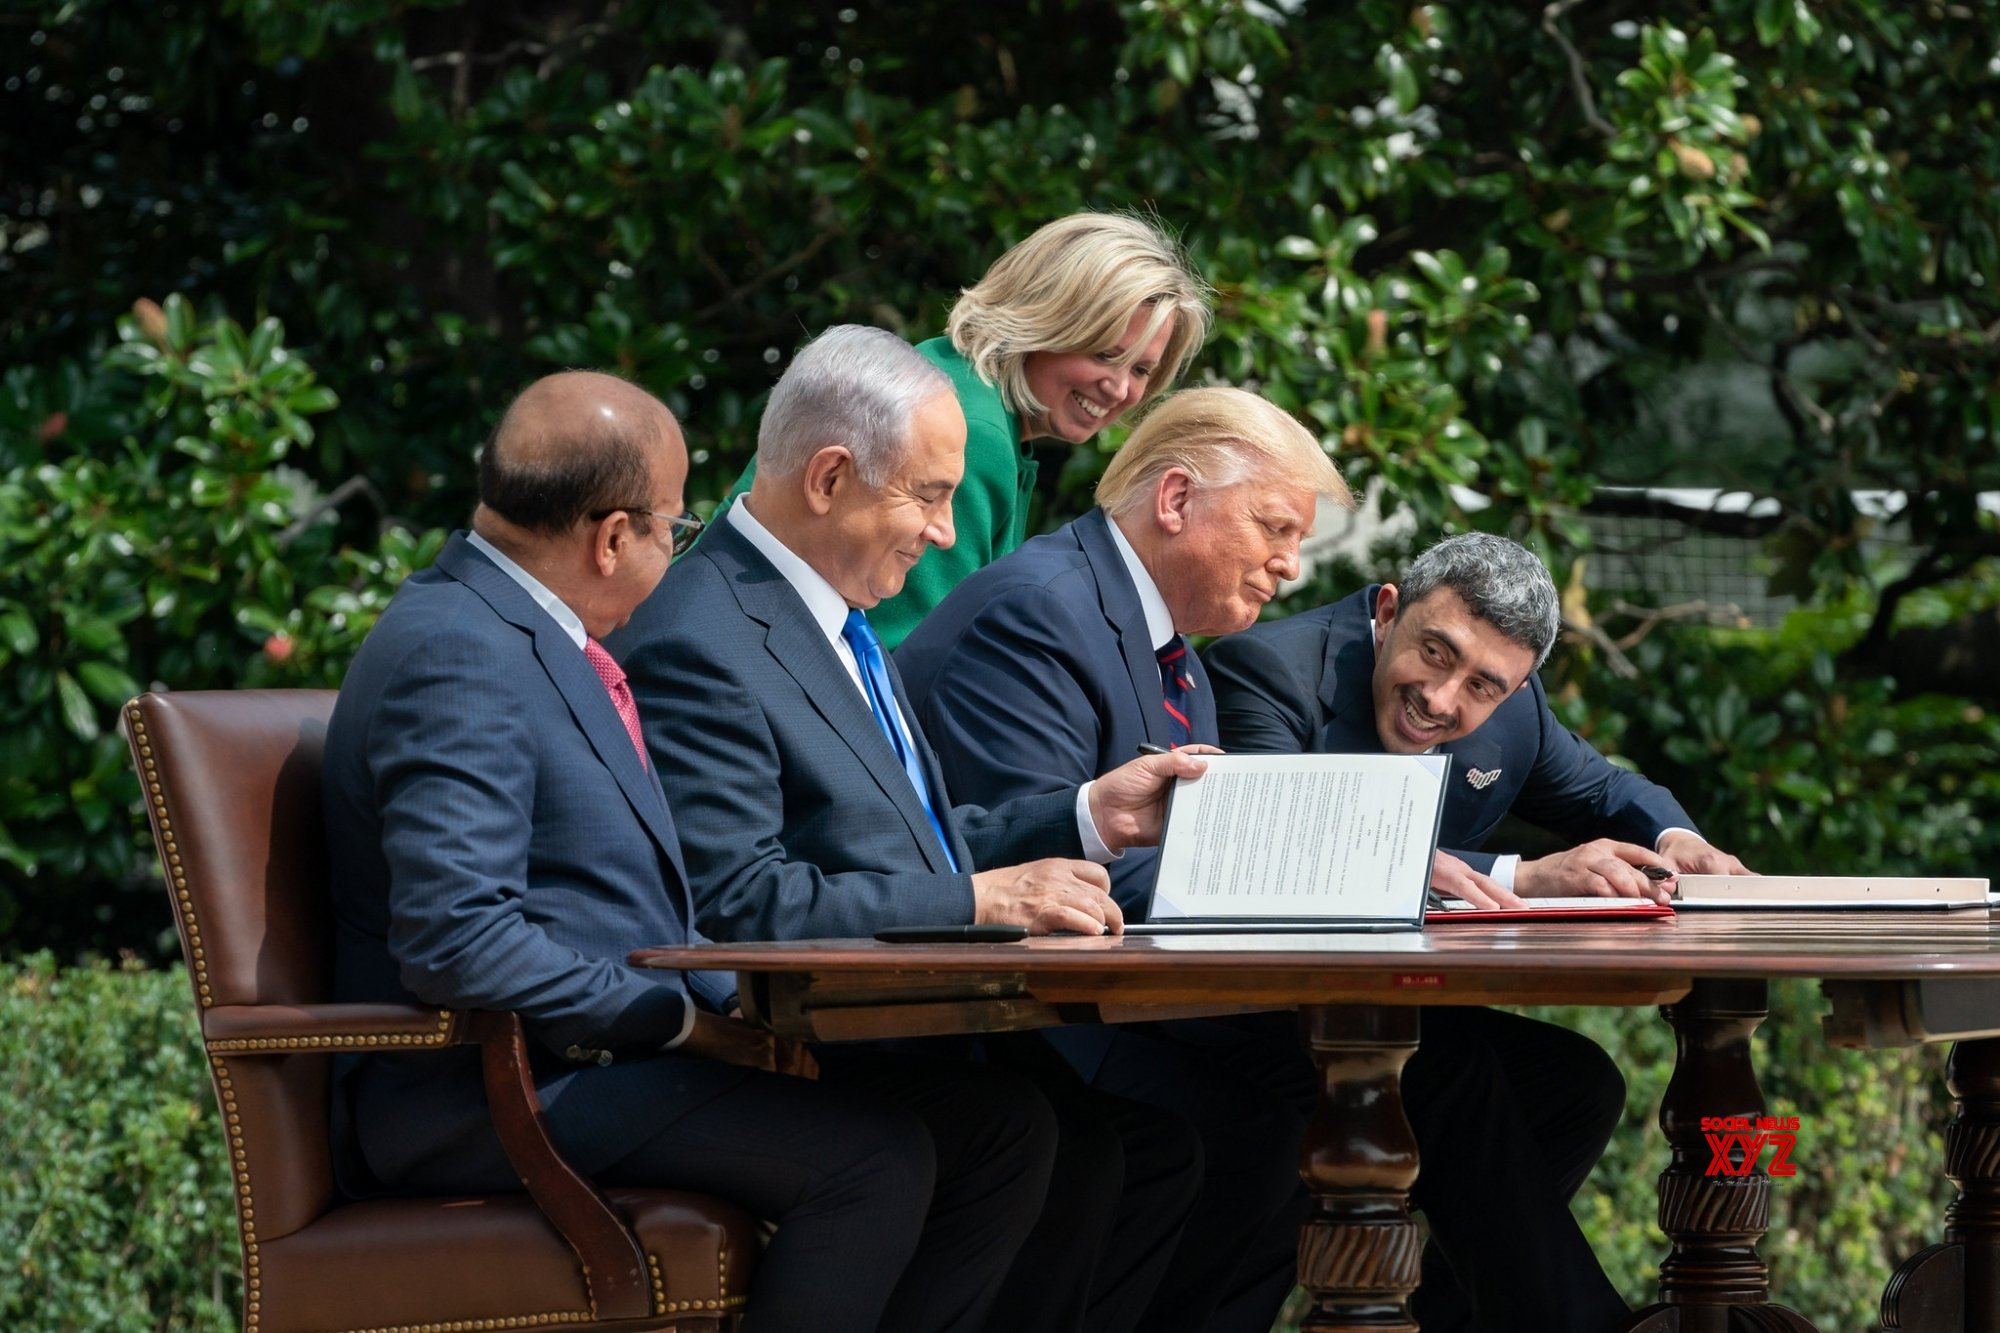 As election looms large, Trump touts Israel deal and pursues Af peace